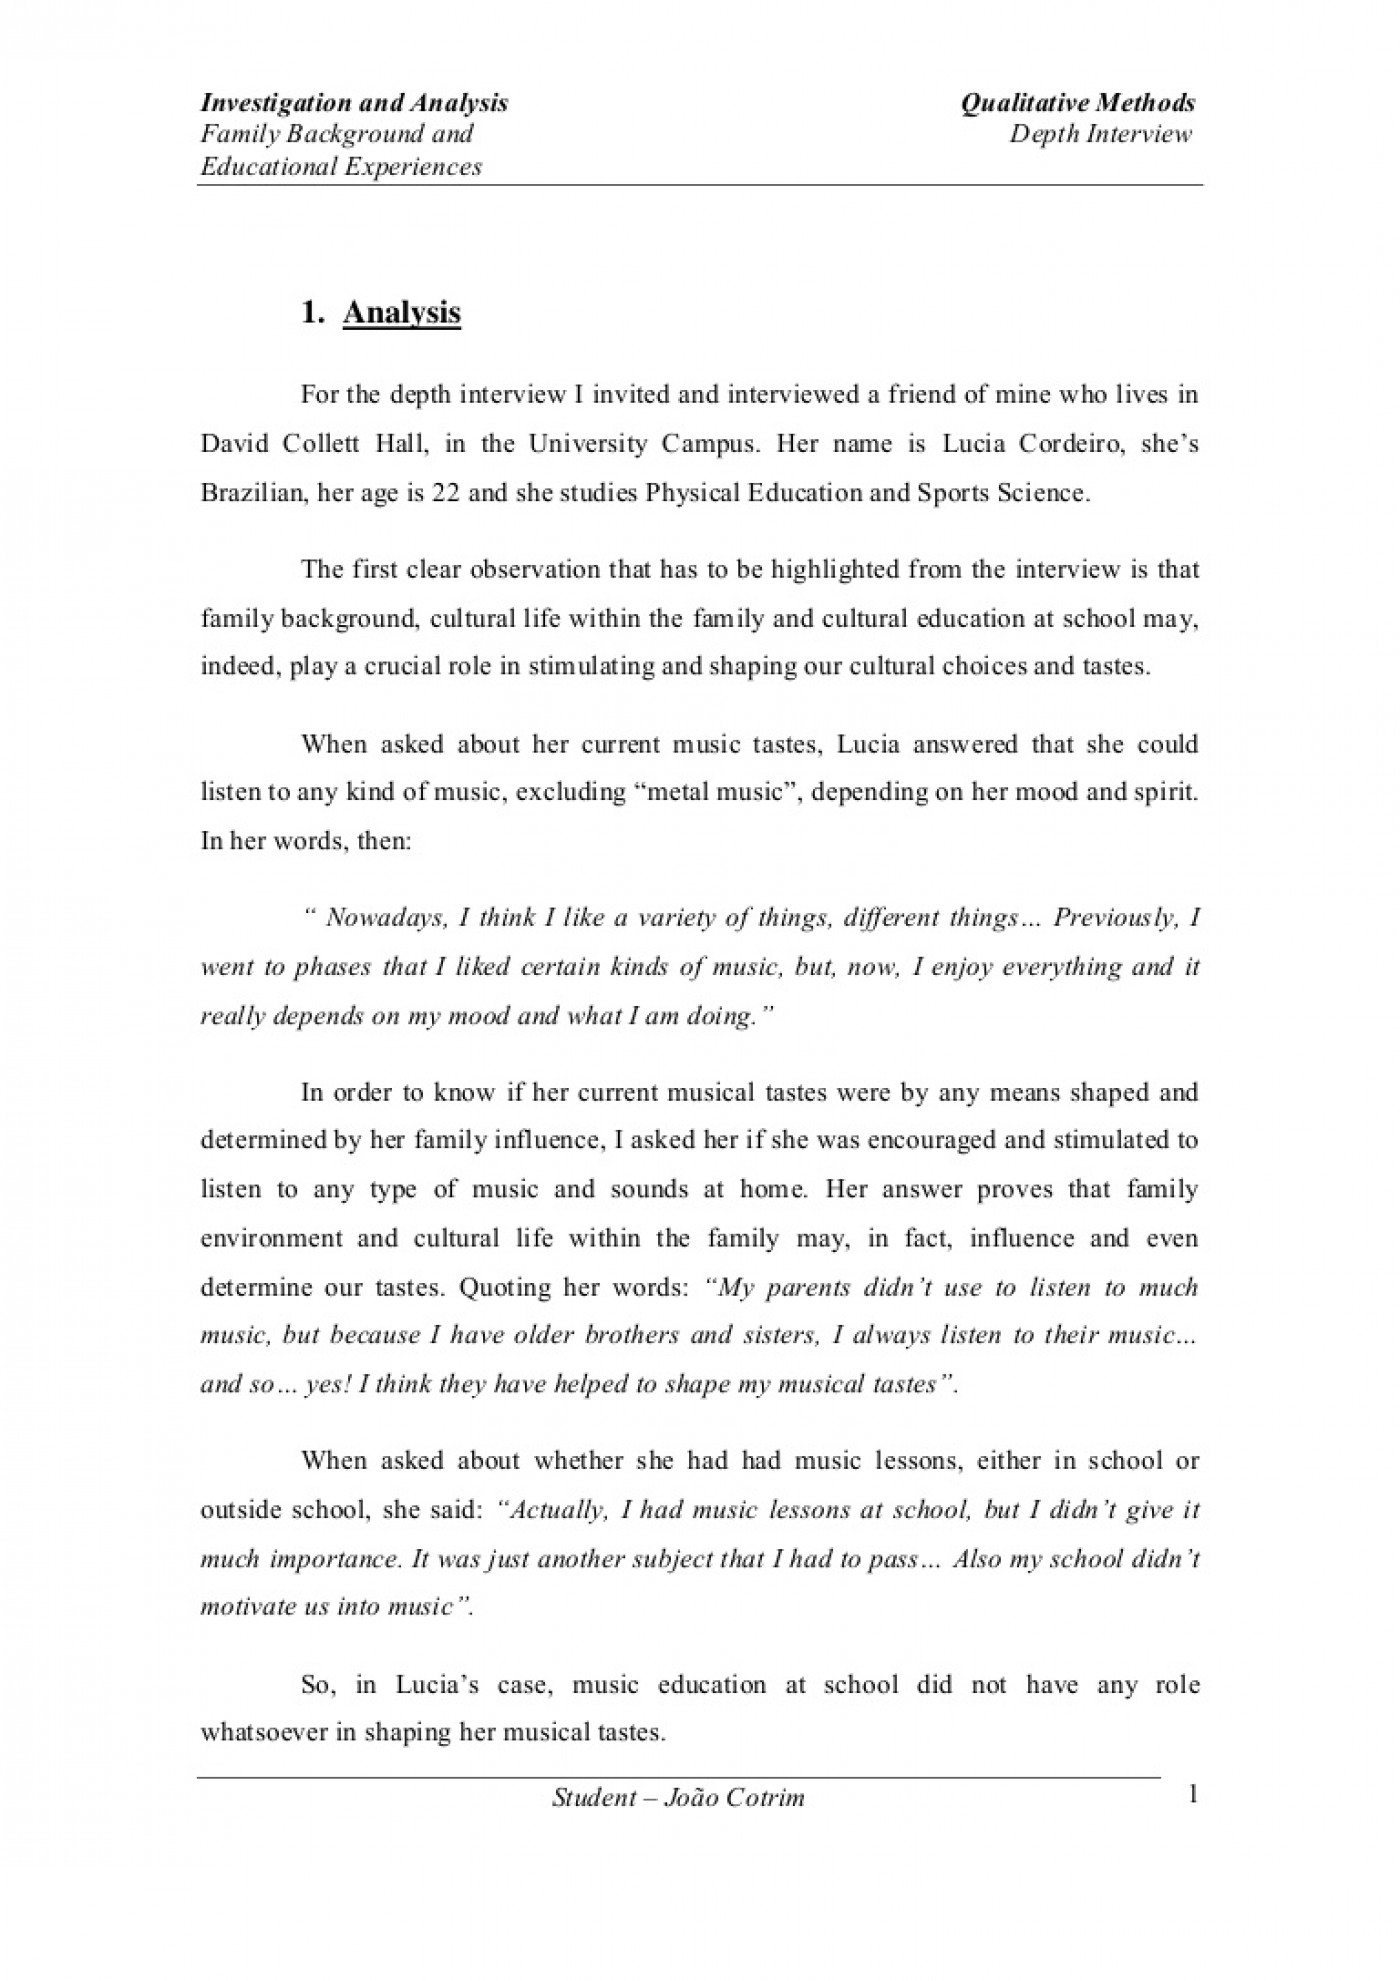 010 Depthinterview Phpapp01 Thumbnail Essay Example Striking Profile How To Start A On Person Homeless 1400